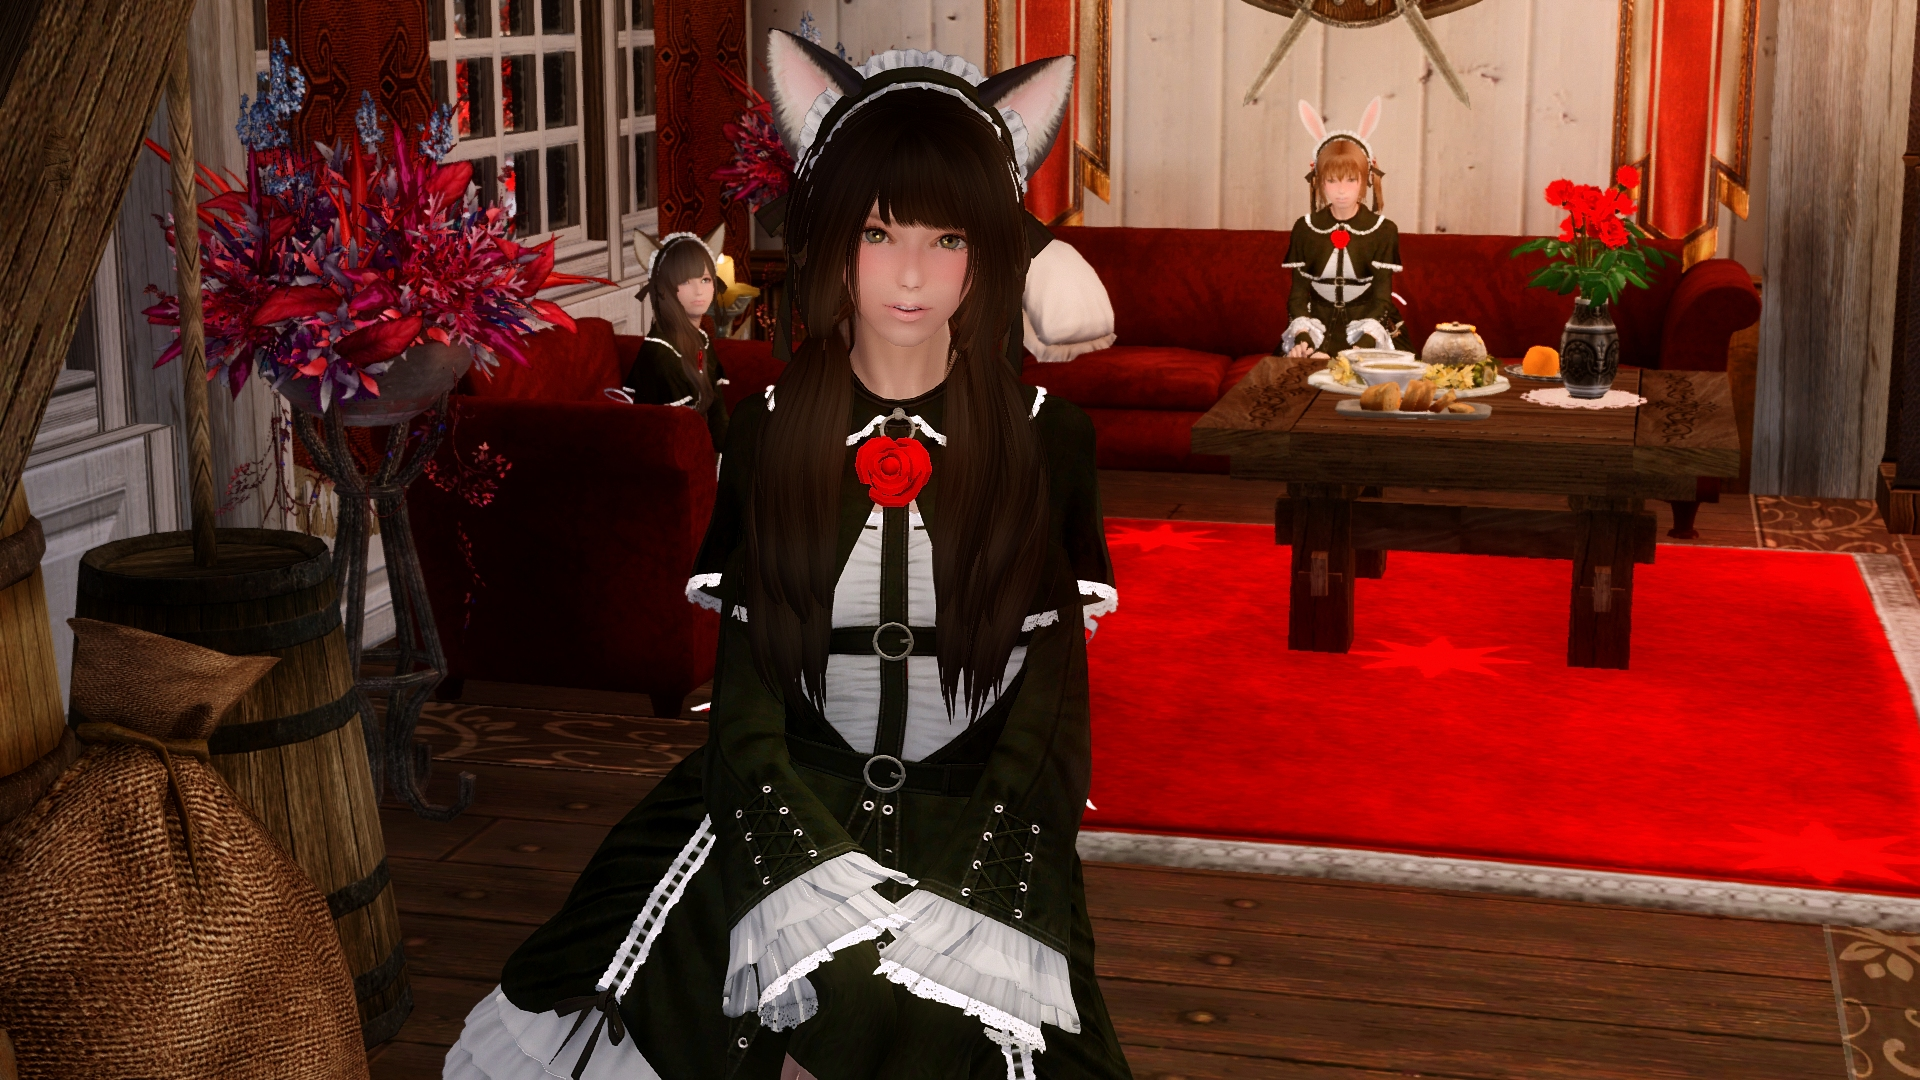 neko-mimi maid at skyrim nexus - mods and community